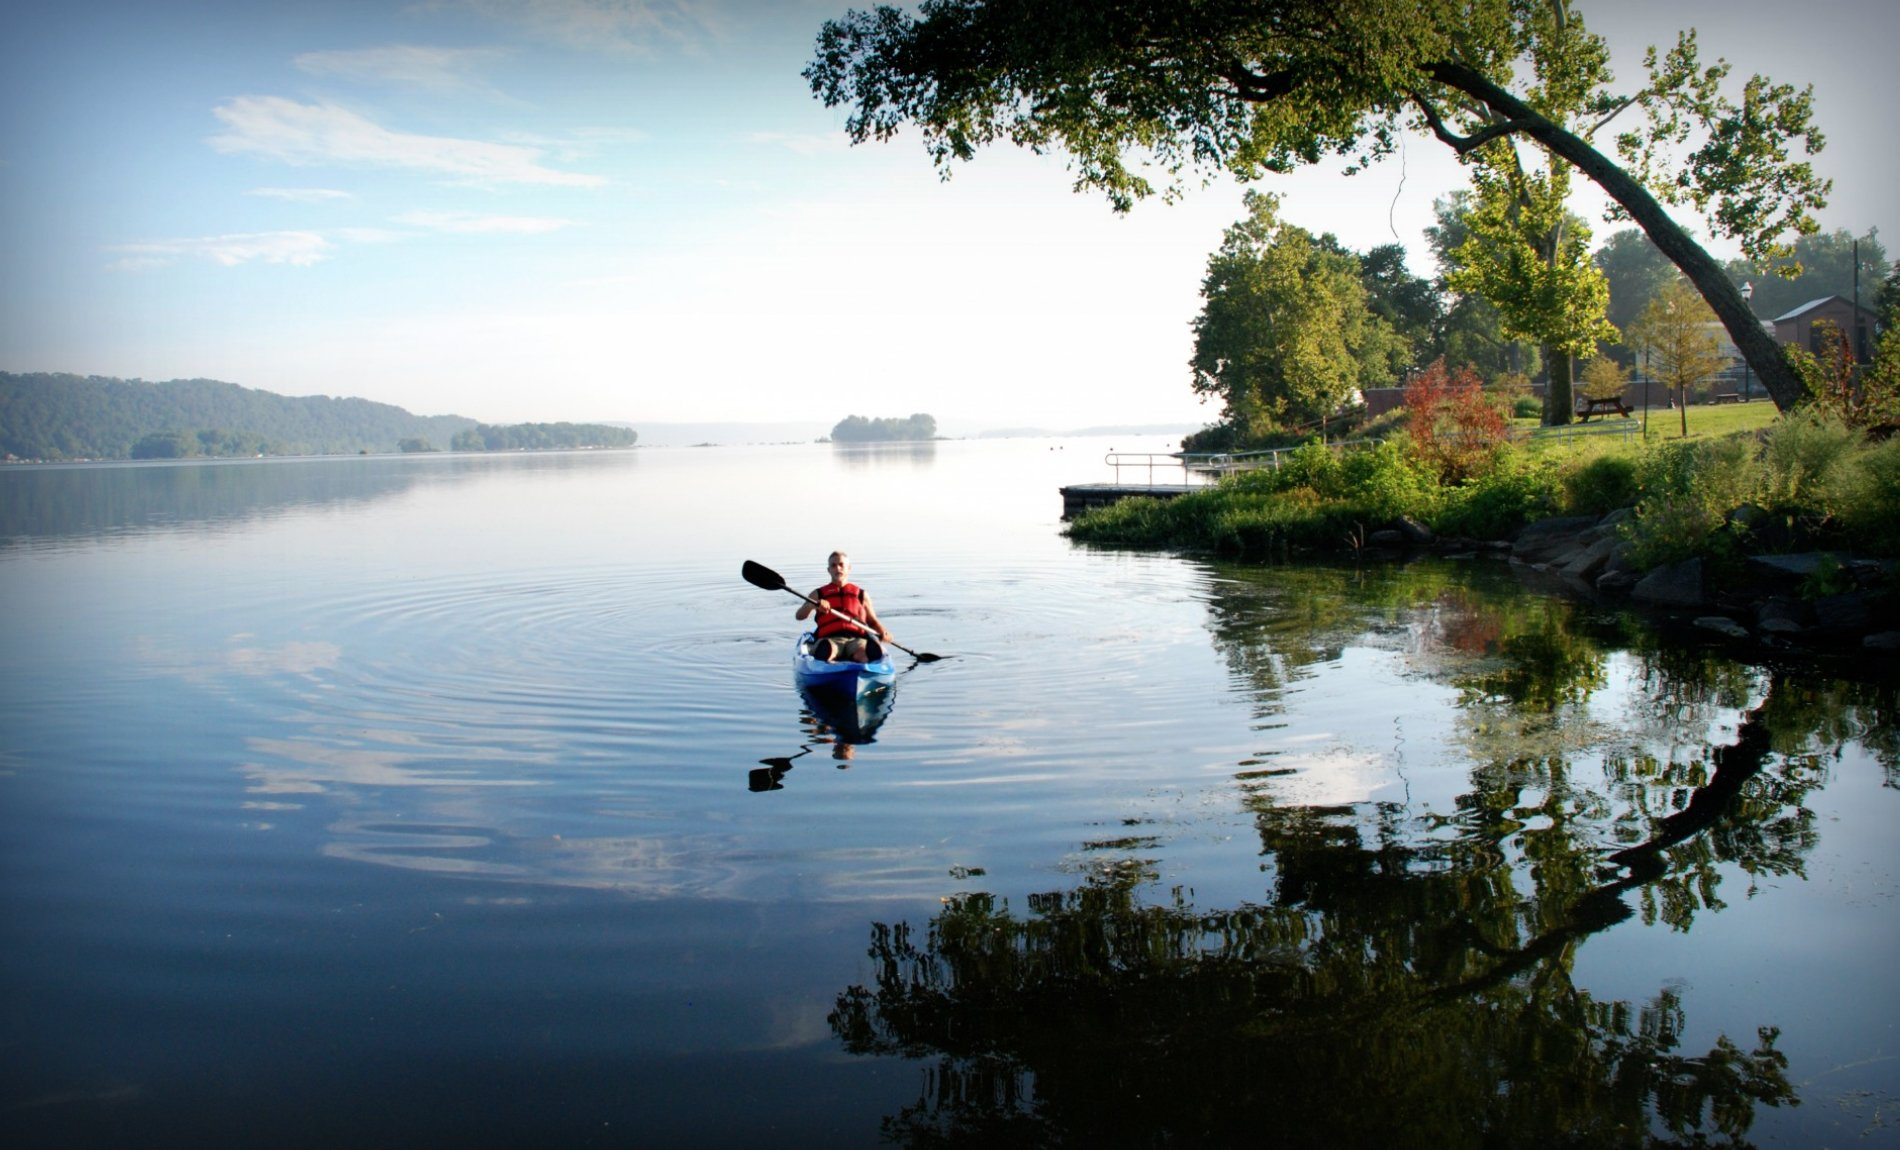 Image of Mark McGuire kayaking on the Susquehanna River.